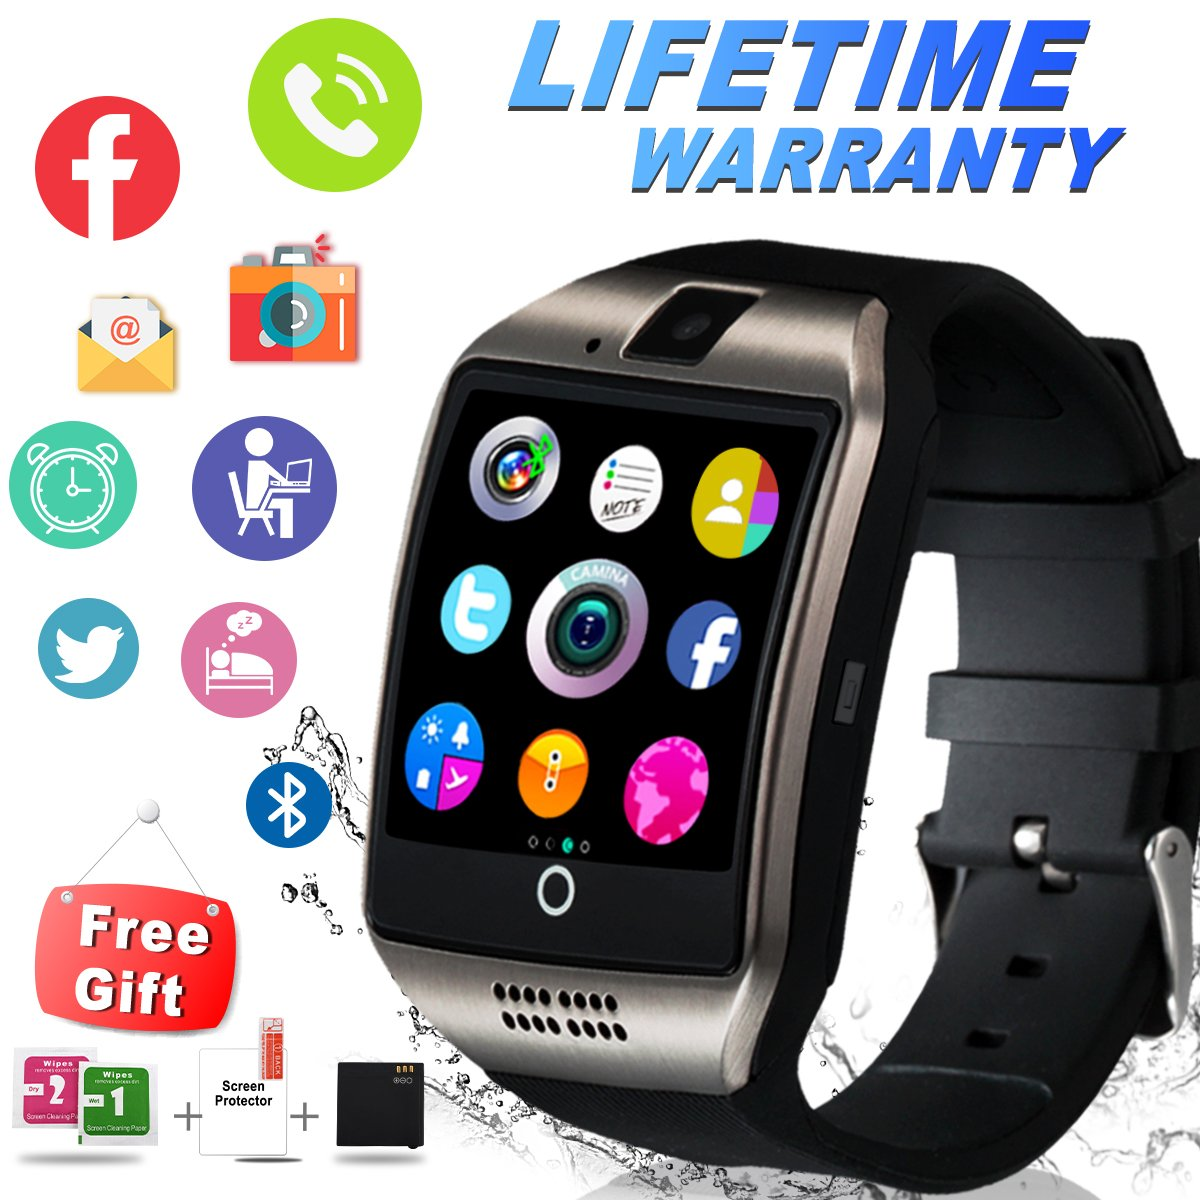 Bluetooth Smart Watch With Camera Sim Card Slot Touch Screen Smartwatch Unlocked Cell Phone Watch Sports Smart Wrist Watch For Android Phones Samsung Sony IOS I (Q-Black)